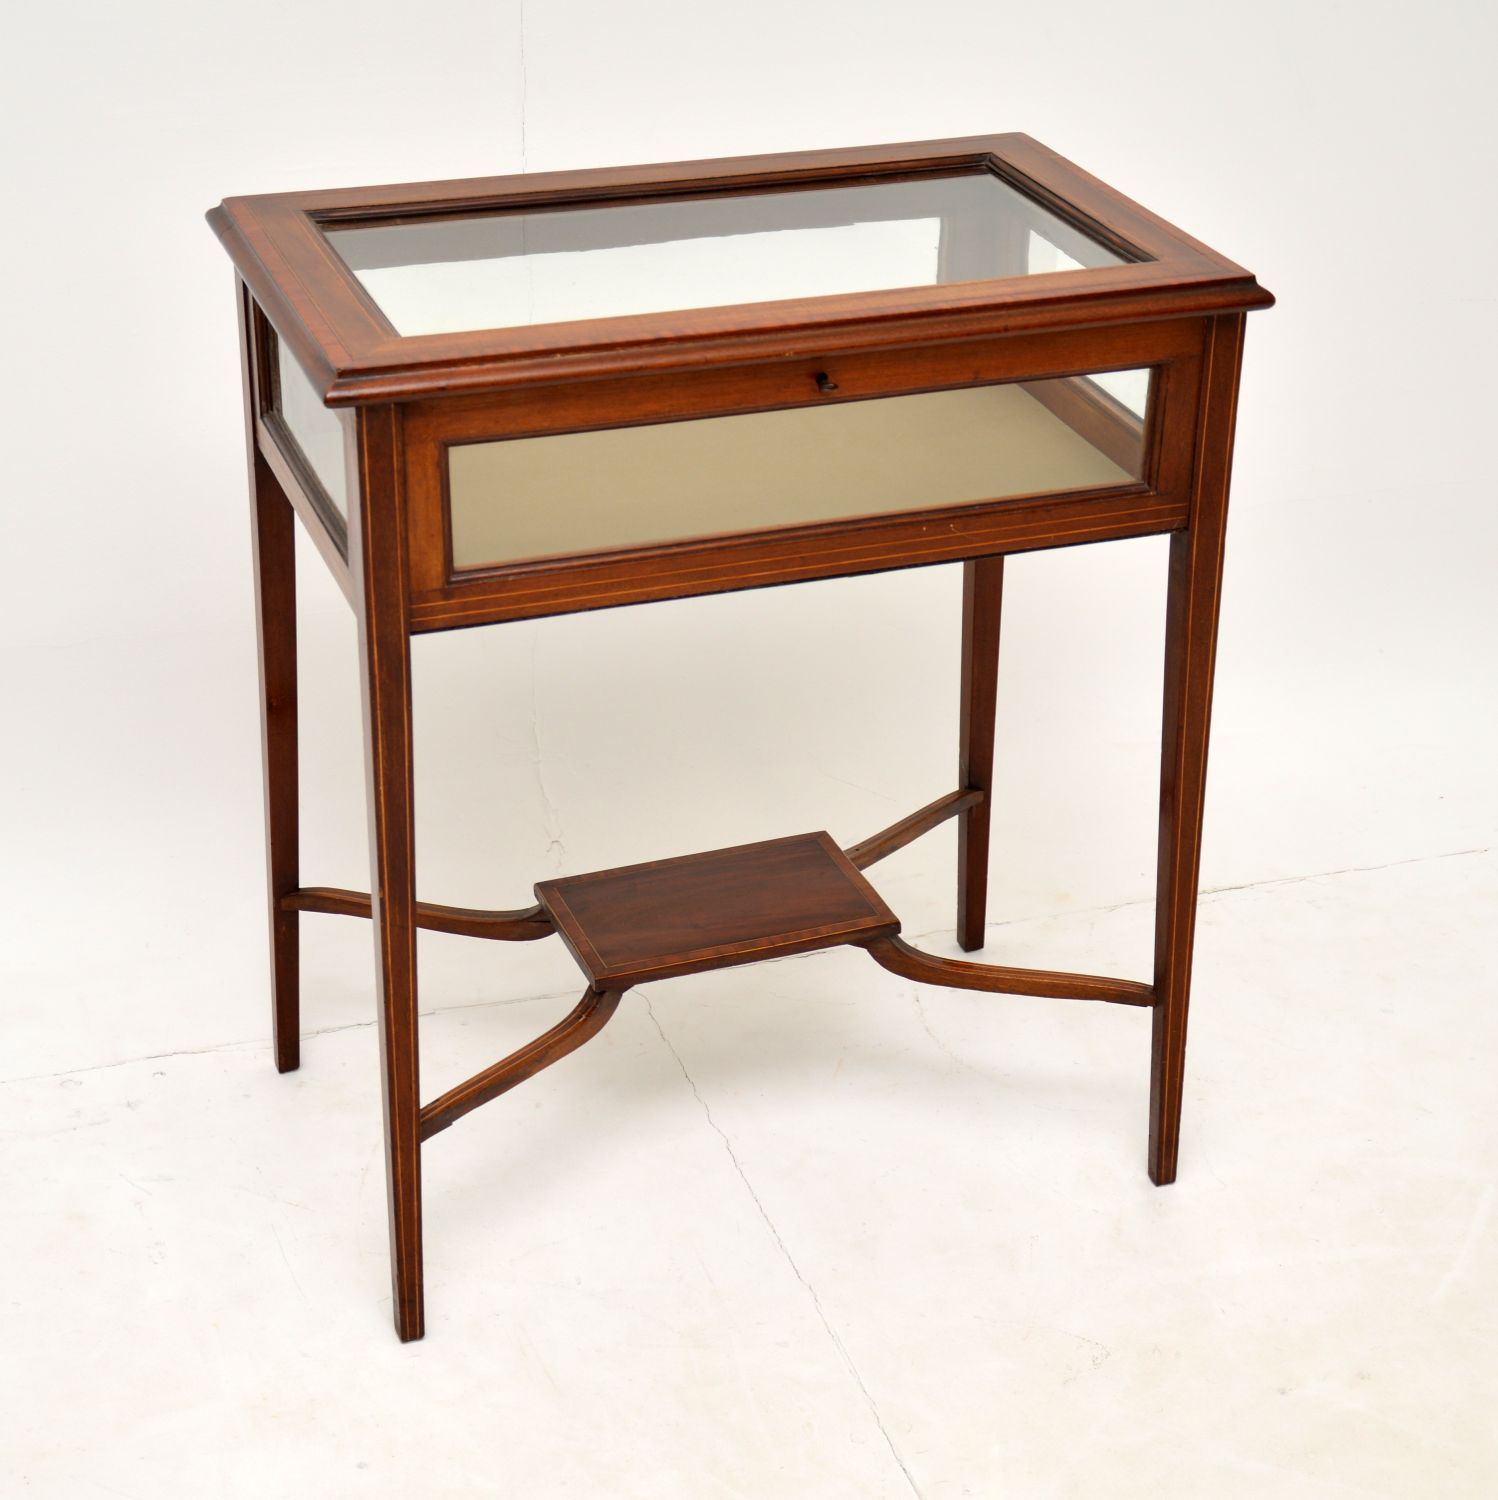 antique edwardian inlaid mahogany bijouterie display case table